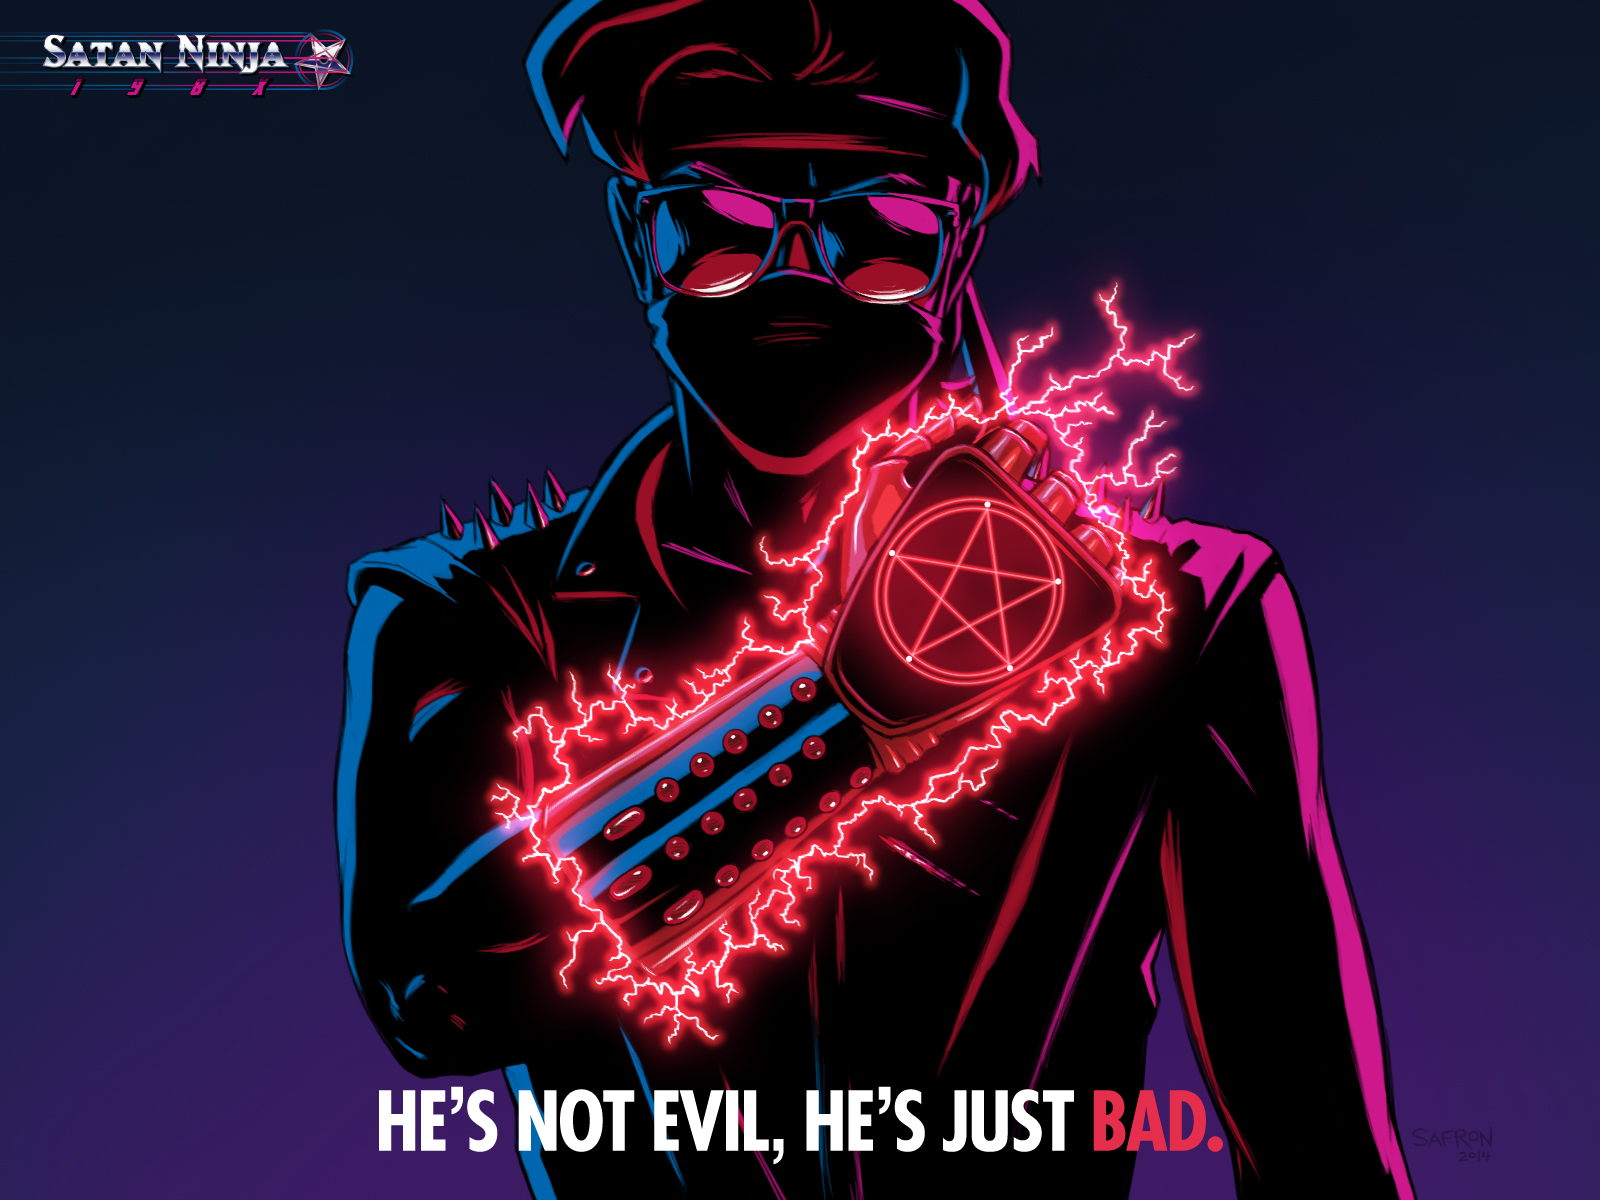 Satan Ninja wallpaper Just Bad 1600x1200